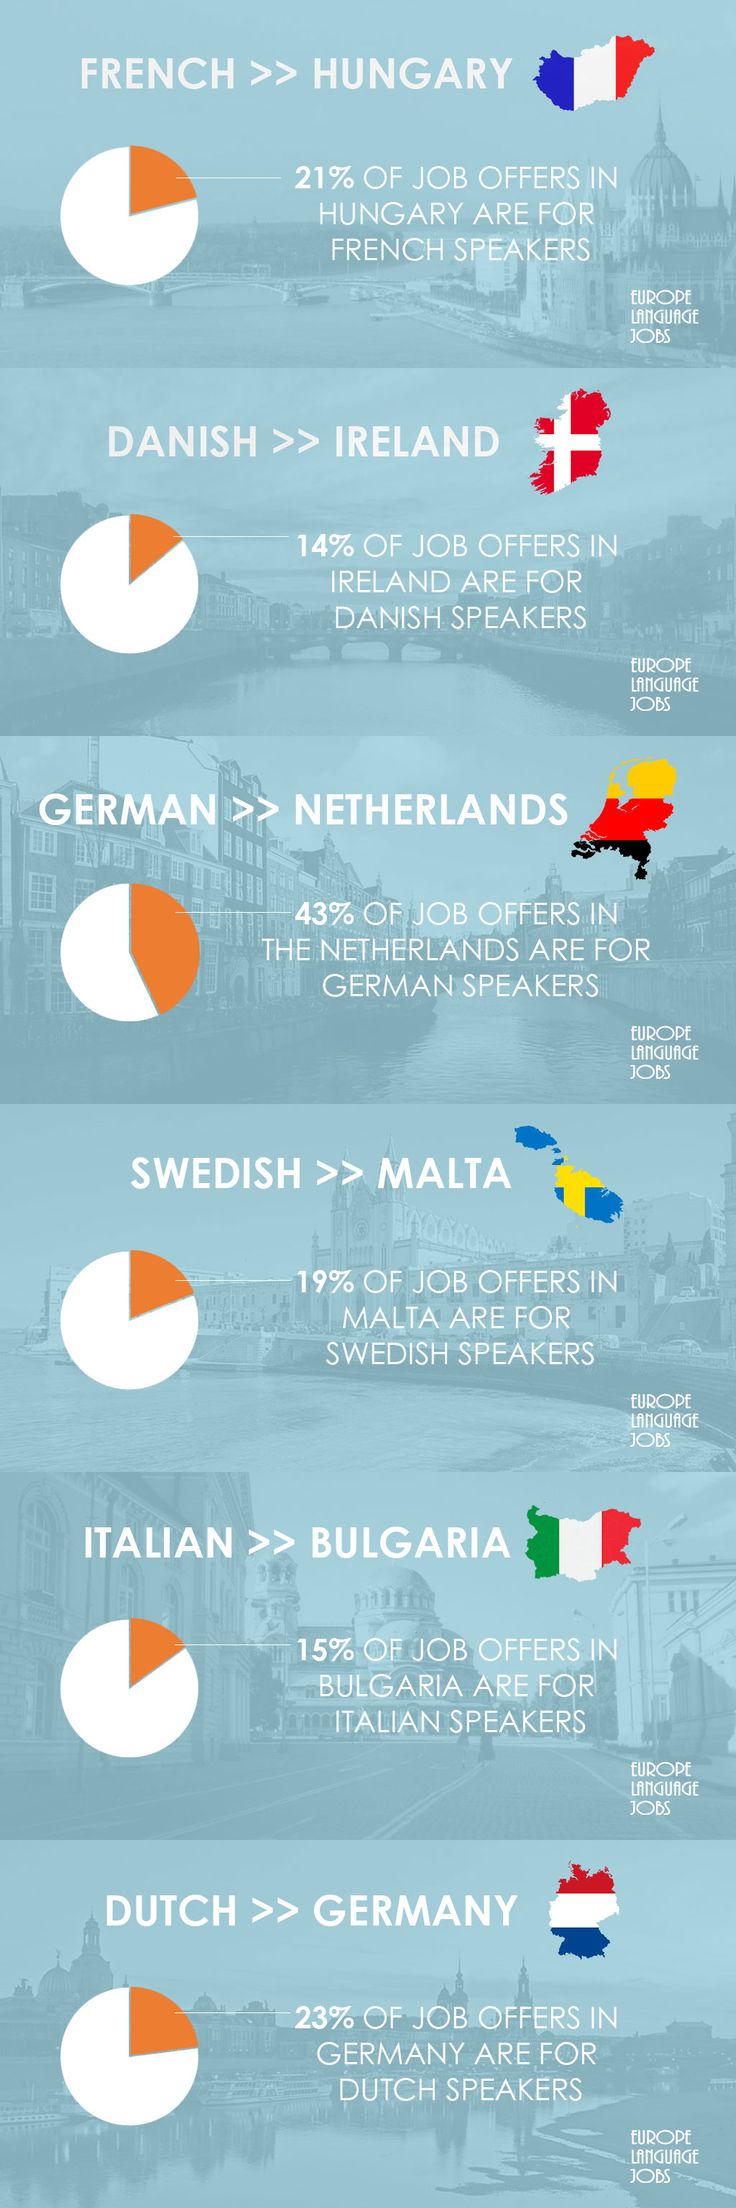 Infographic about work in Europe. It shows the country where each European language is demanded in job offers. #infographic #work #languages #careers #europe #french #dutch #italian #german #swedish #danish